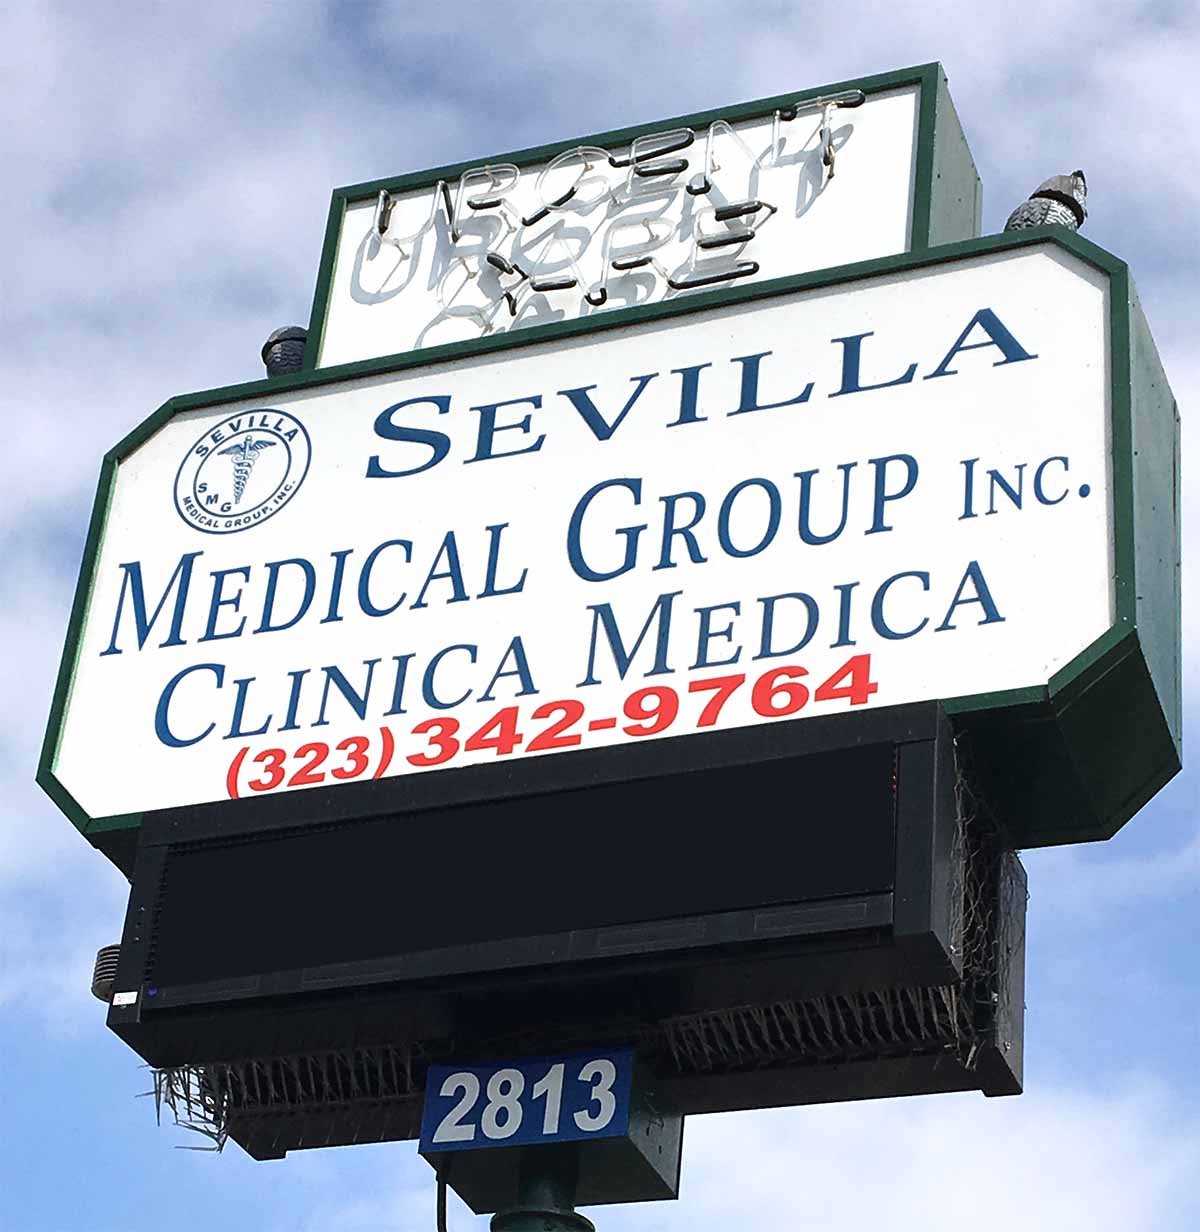 Sevilla Medical Group – Internal Medicine, Family Practice, and